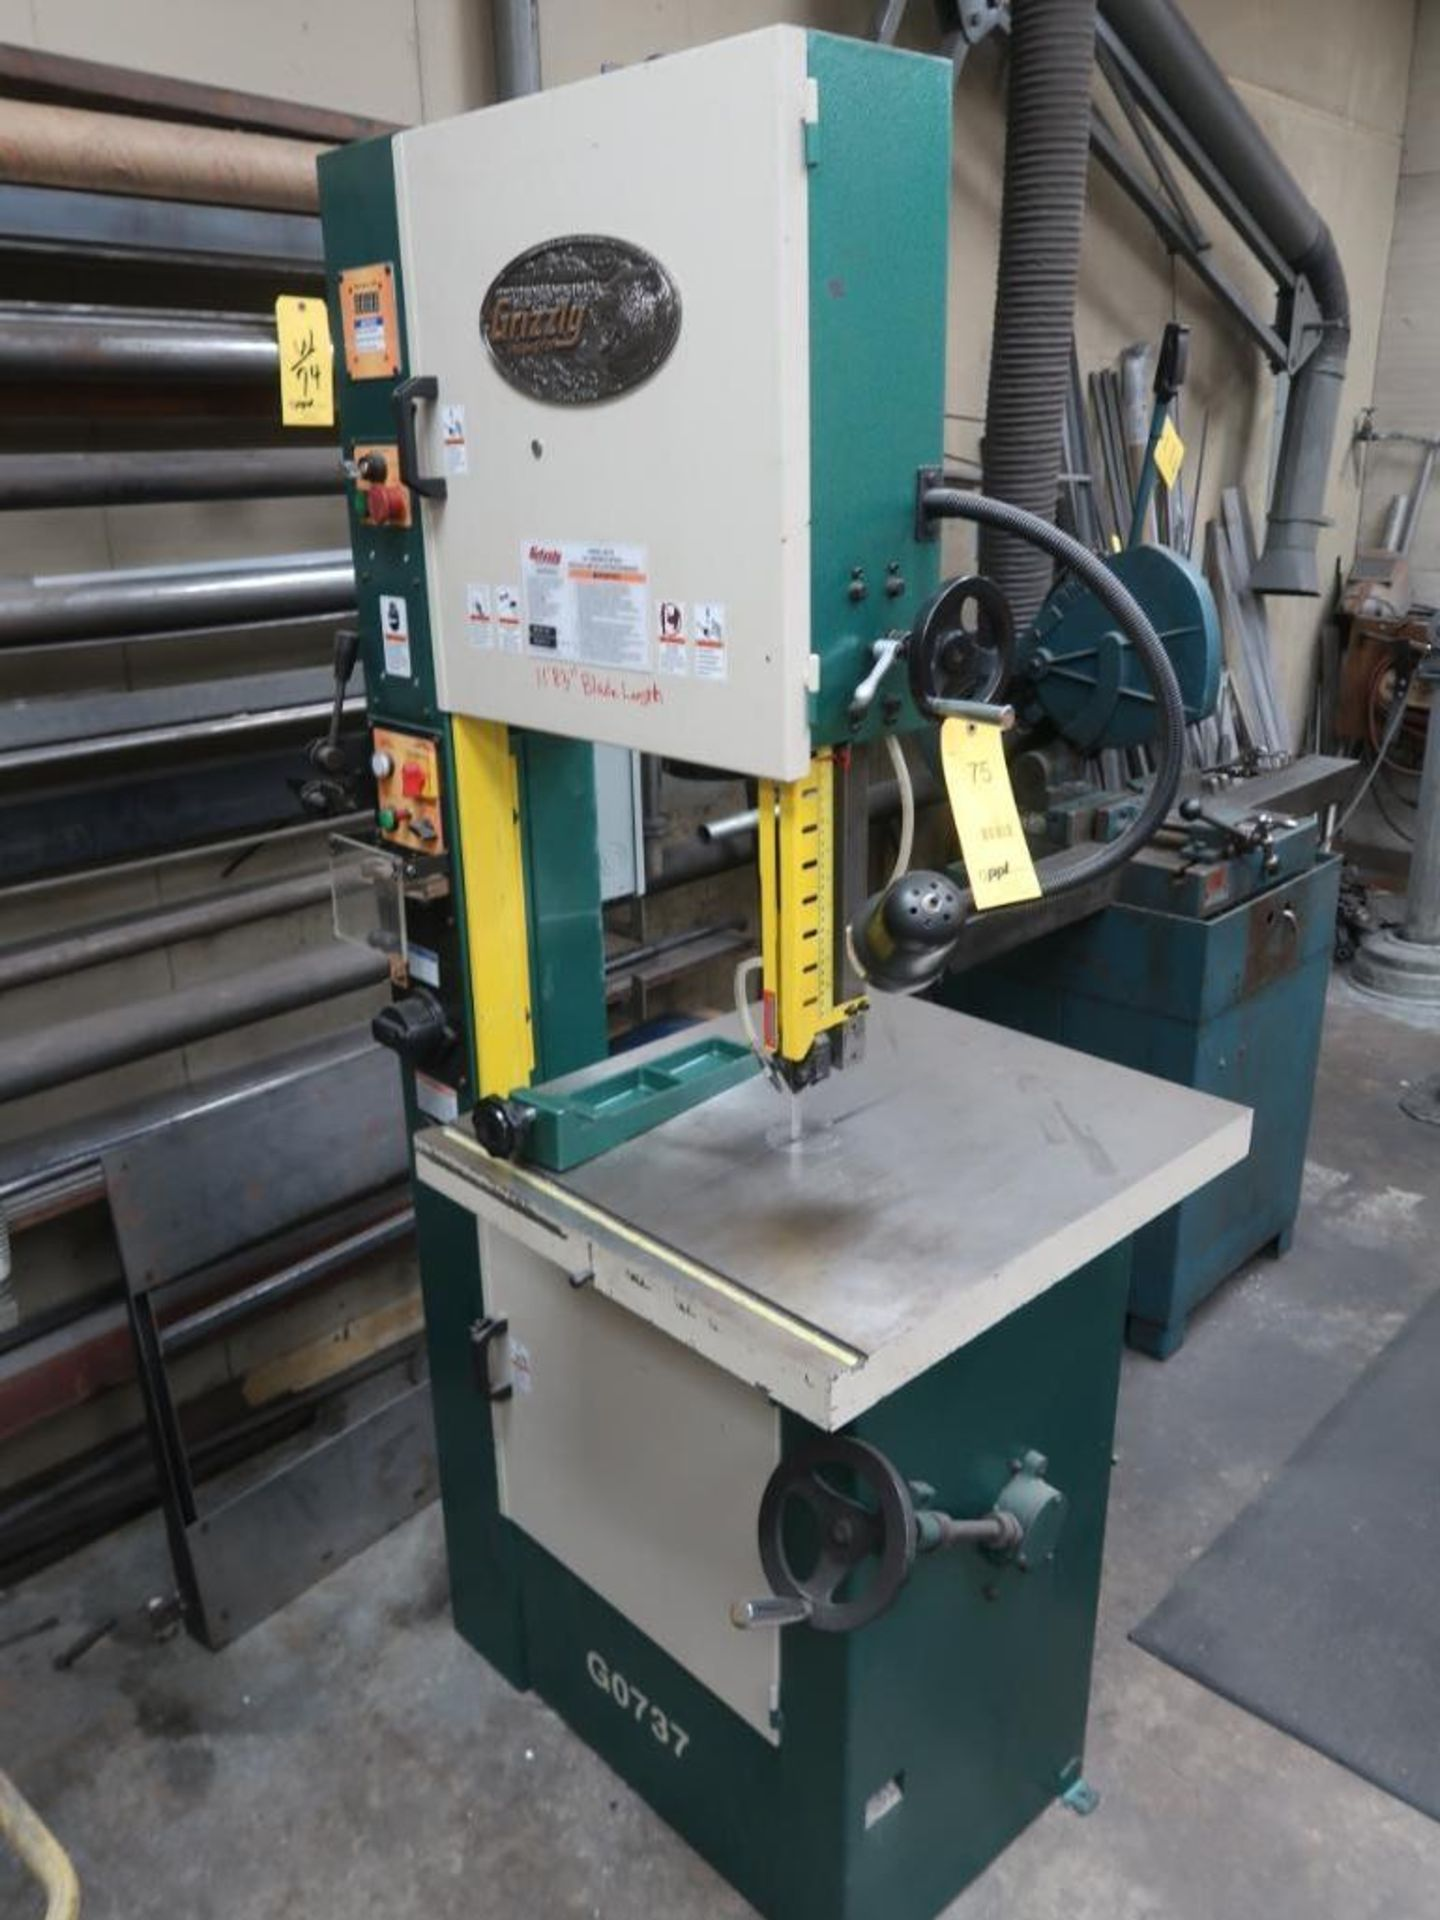 Lot 75 - Grizzly 18 in. Variable Speed Band Saw / Welder Model G0737, S/N 1209021 (2012)